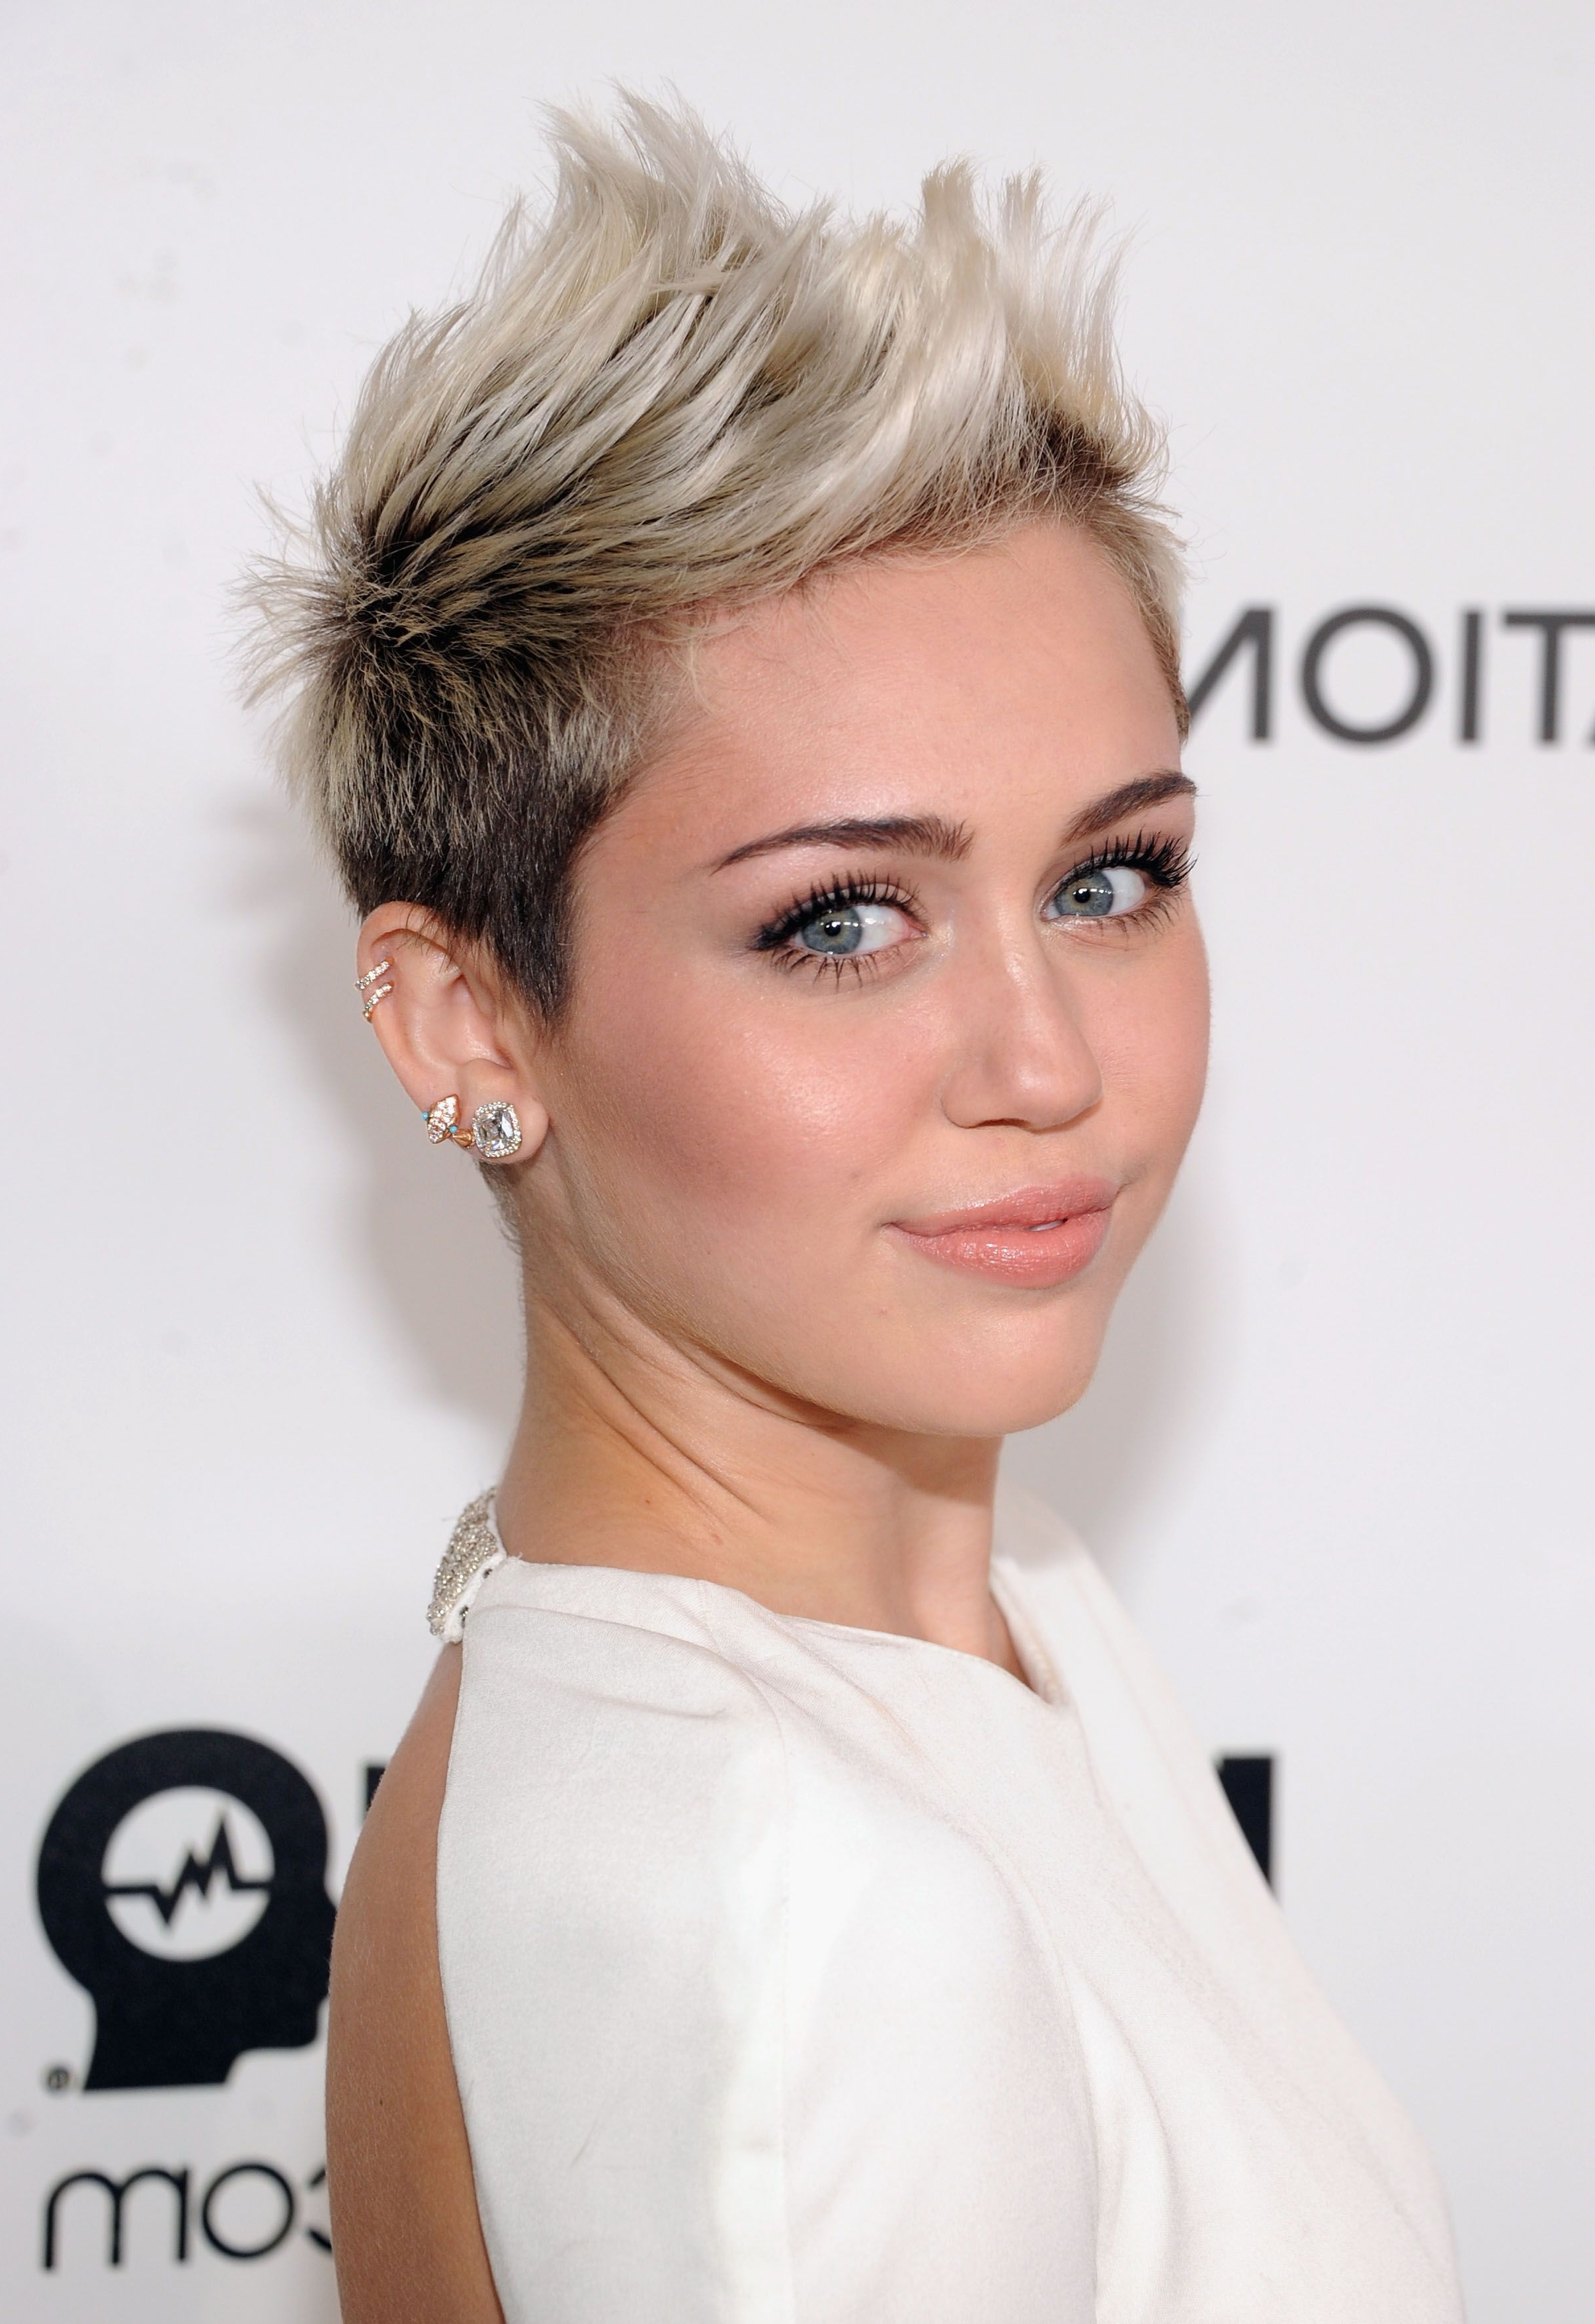 53 Best Pixie Cut Hairstyle Ideas 2018 – Cute Celebrity Pixie Haircuts With Latest Finely Chopped Buttery Blonde Pixie Hairstyles (View 15 of 20)